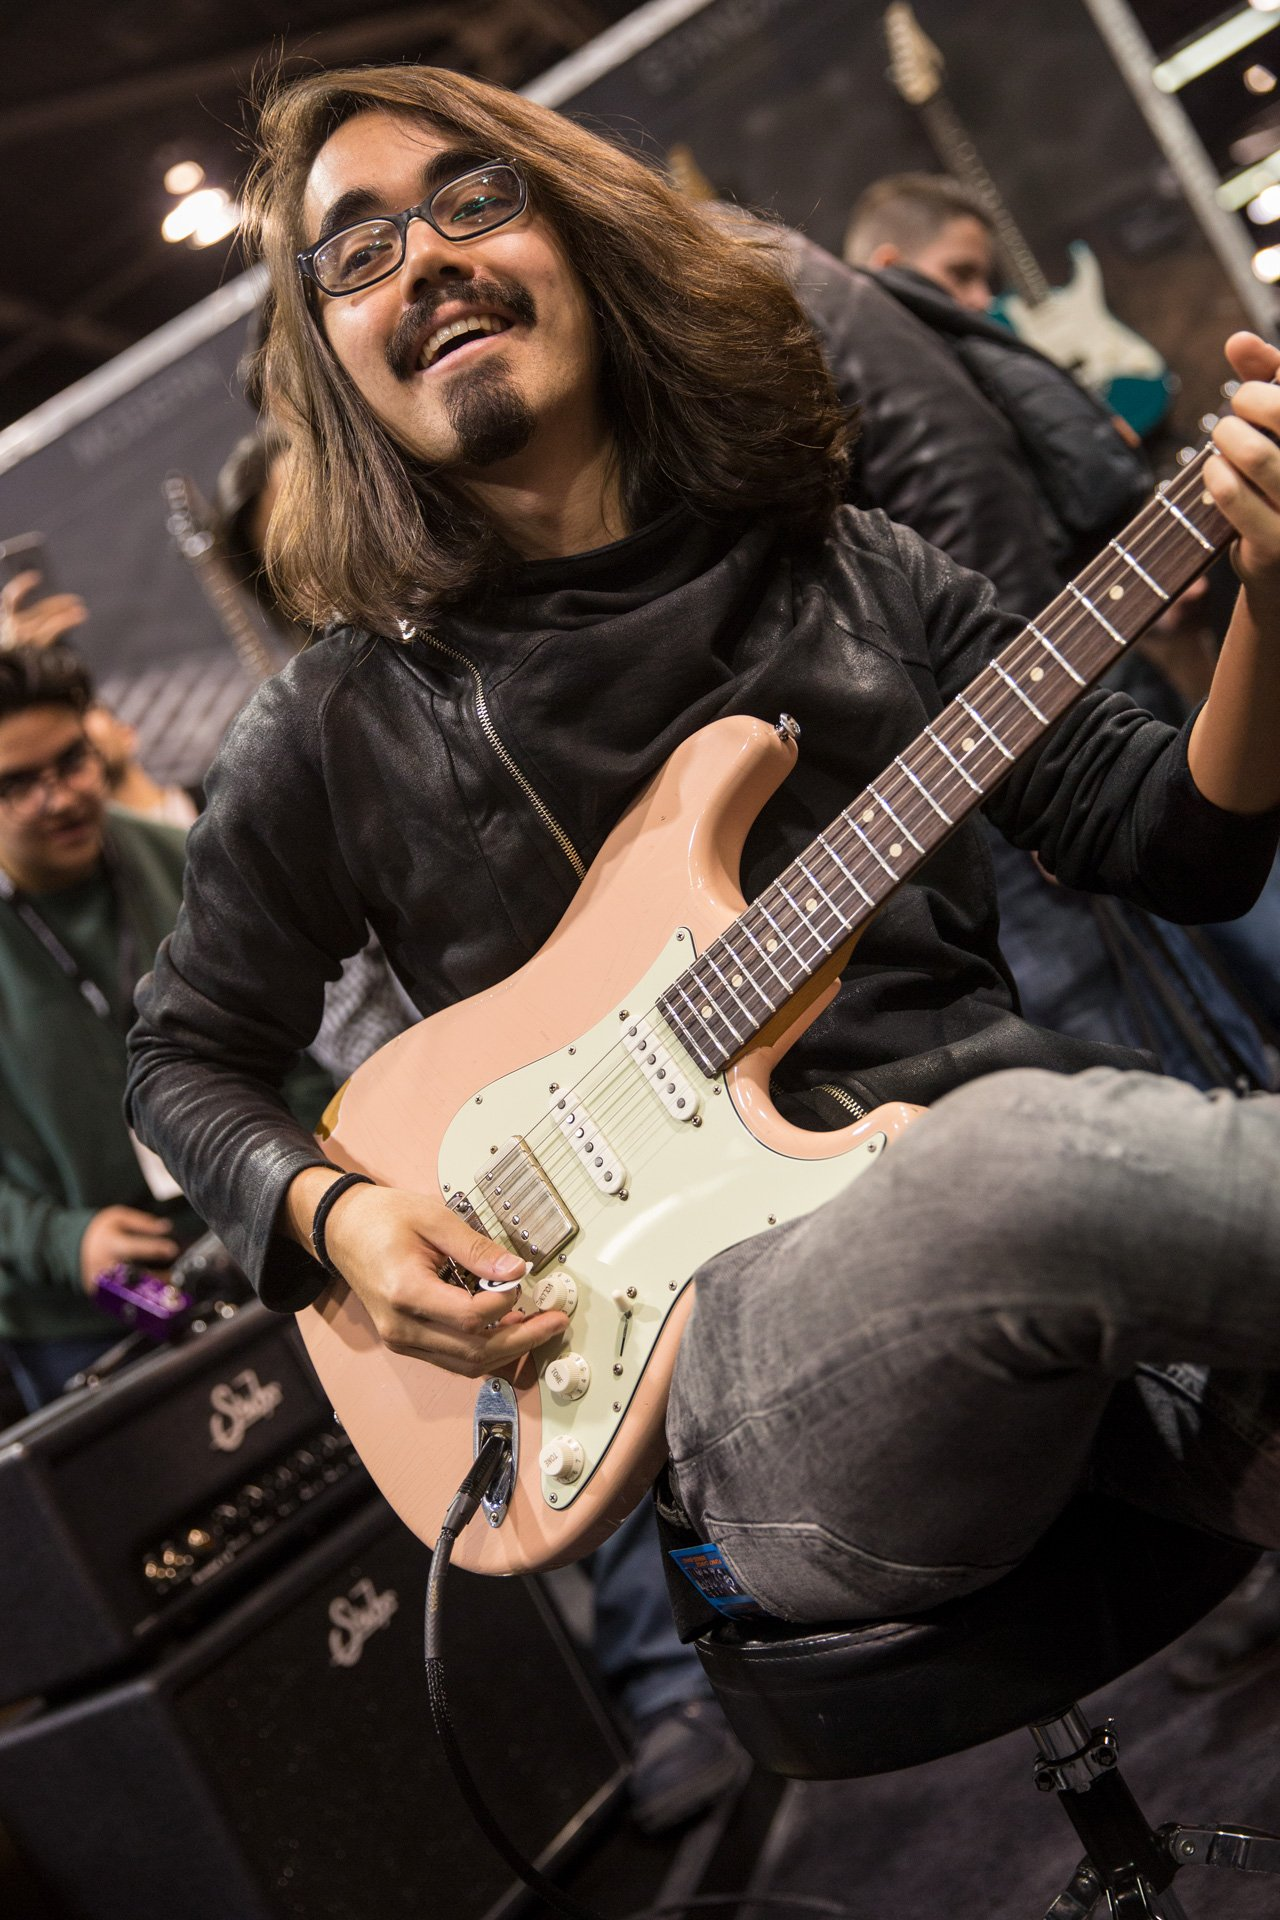 Suhr Announces Mateus Asato Signature Series Guitar Guitars Wiring Diagrams We Are Pleased To Announce New For Namm 2018 The Offering Two Instruments